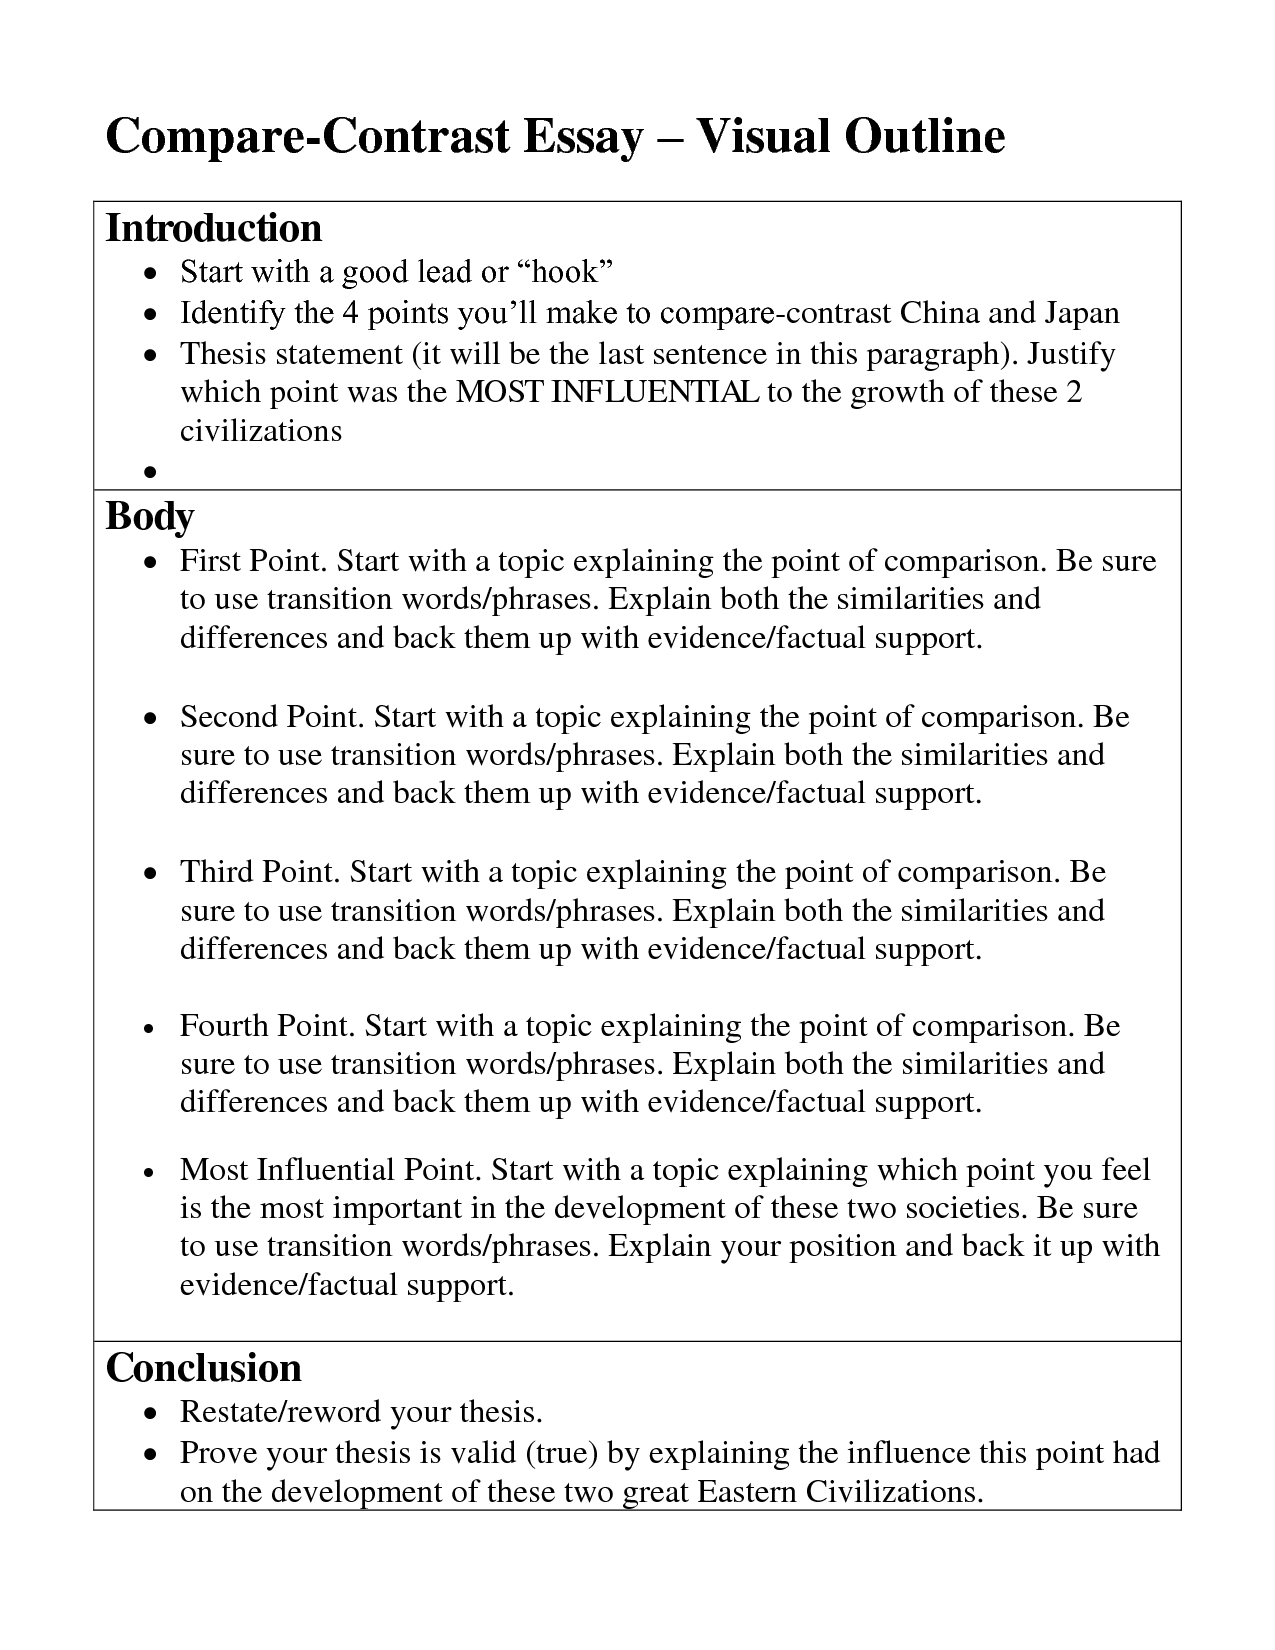 004 Compare Contrast Essay Outline Impressive And Worksheet Pdf Format 5 Paragraph Point By Full